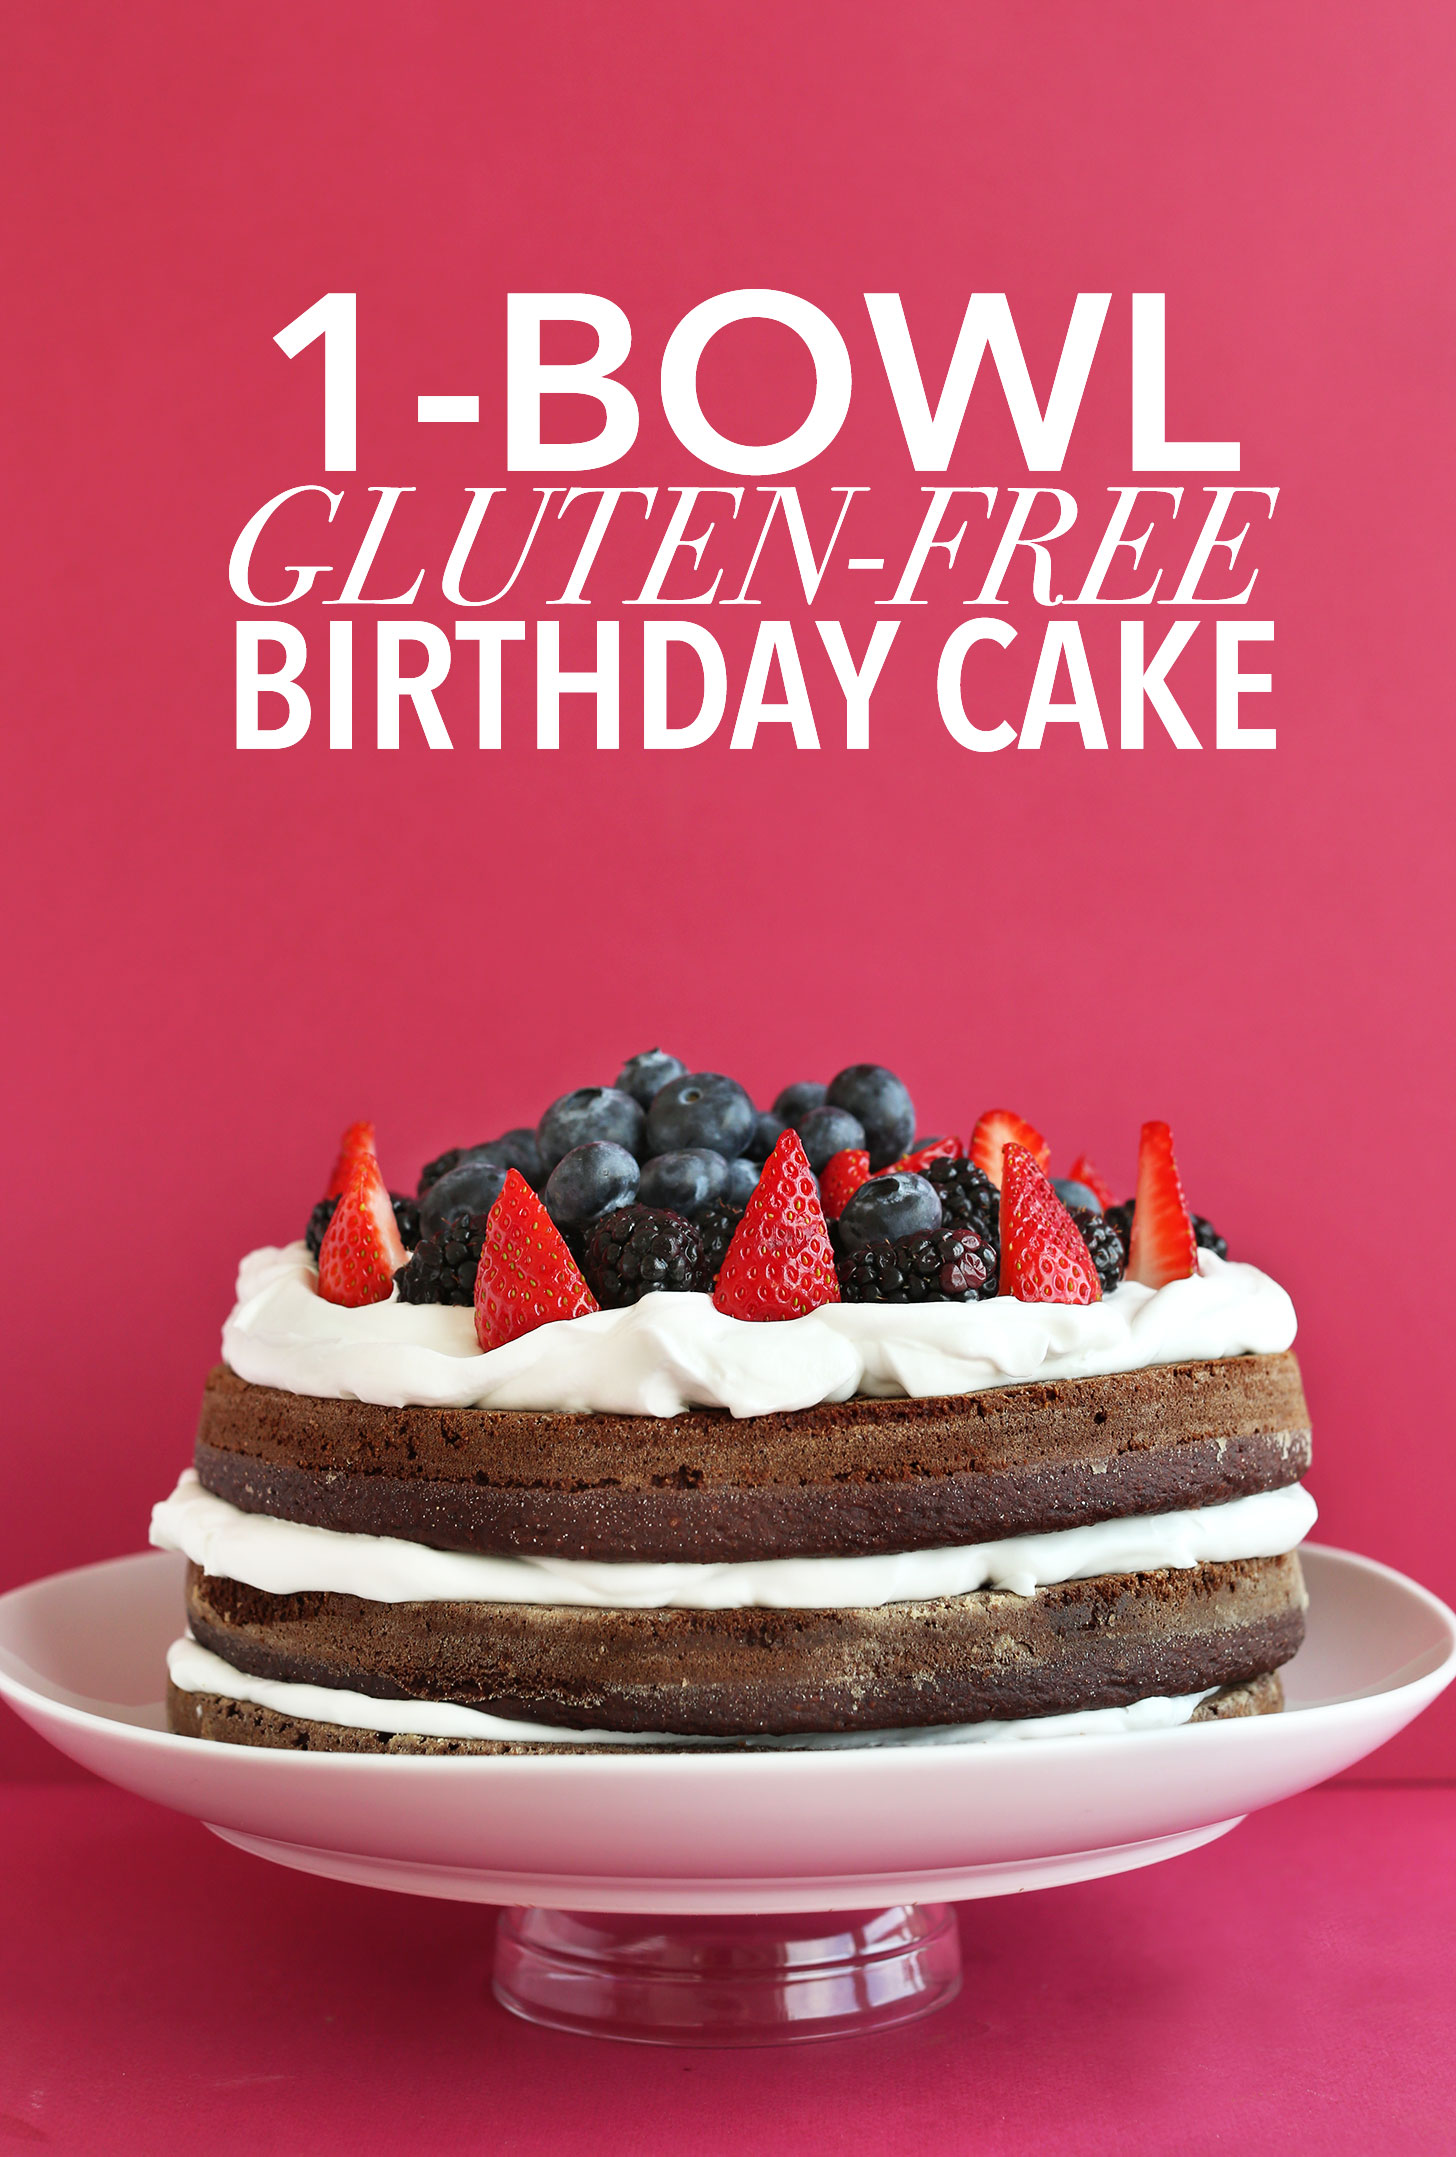 Amazing gluten-free vegan summer birthday cake resting on a cake stand